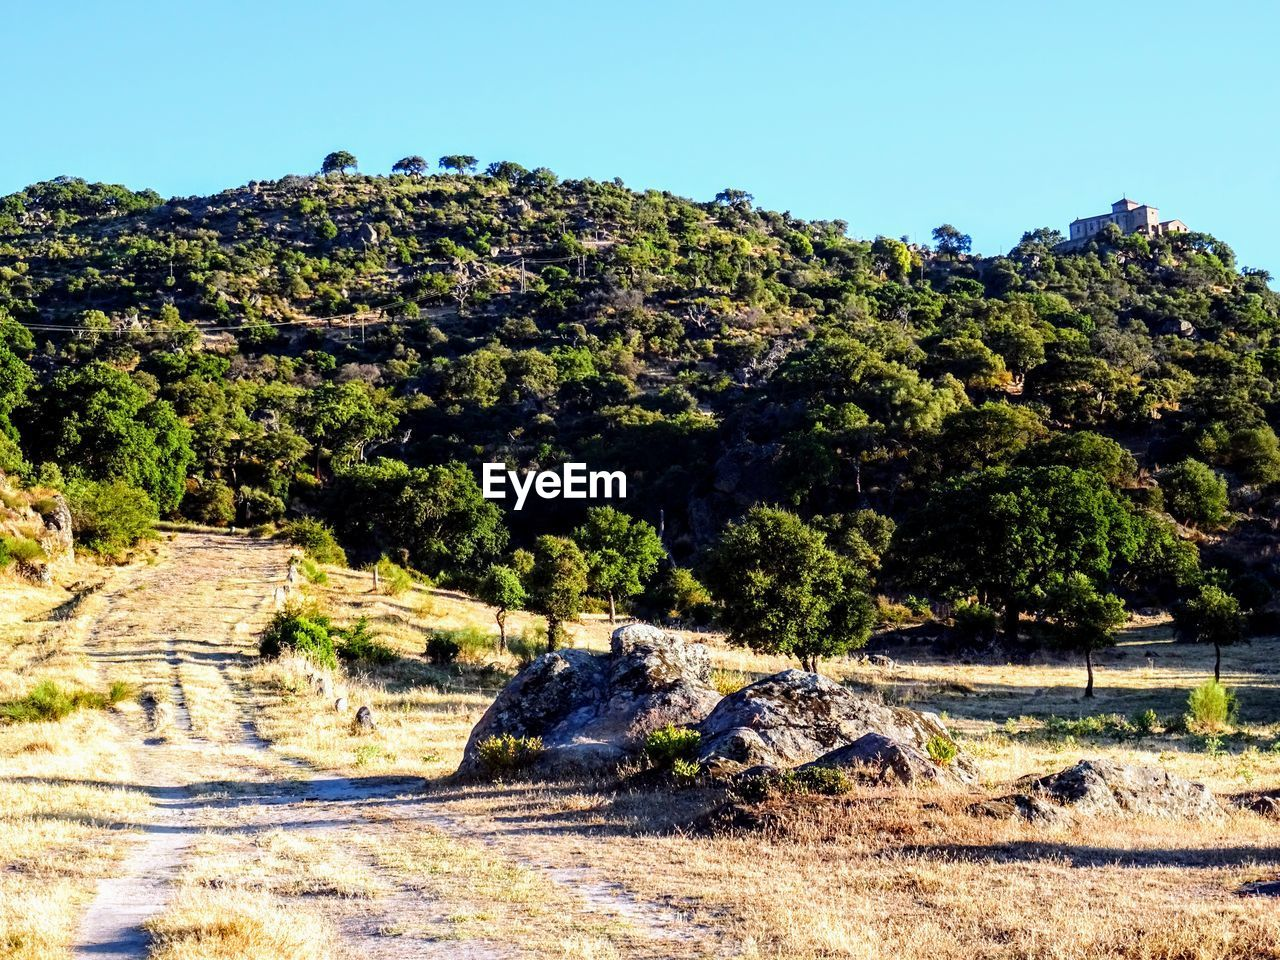 tree, plant, sky, growth, nature, sunlight, day, no people, tranquility, beauty in nature, scenics - nature, clear sky, land, tranquil scene, landscape, mountain, green color, environment, rock, non-urban scene, outdoors